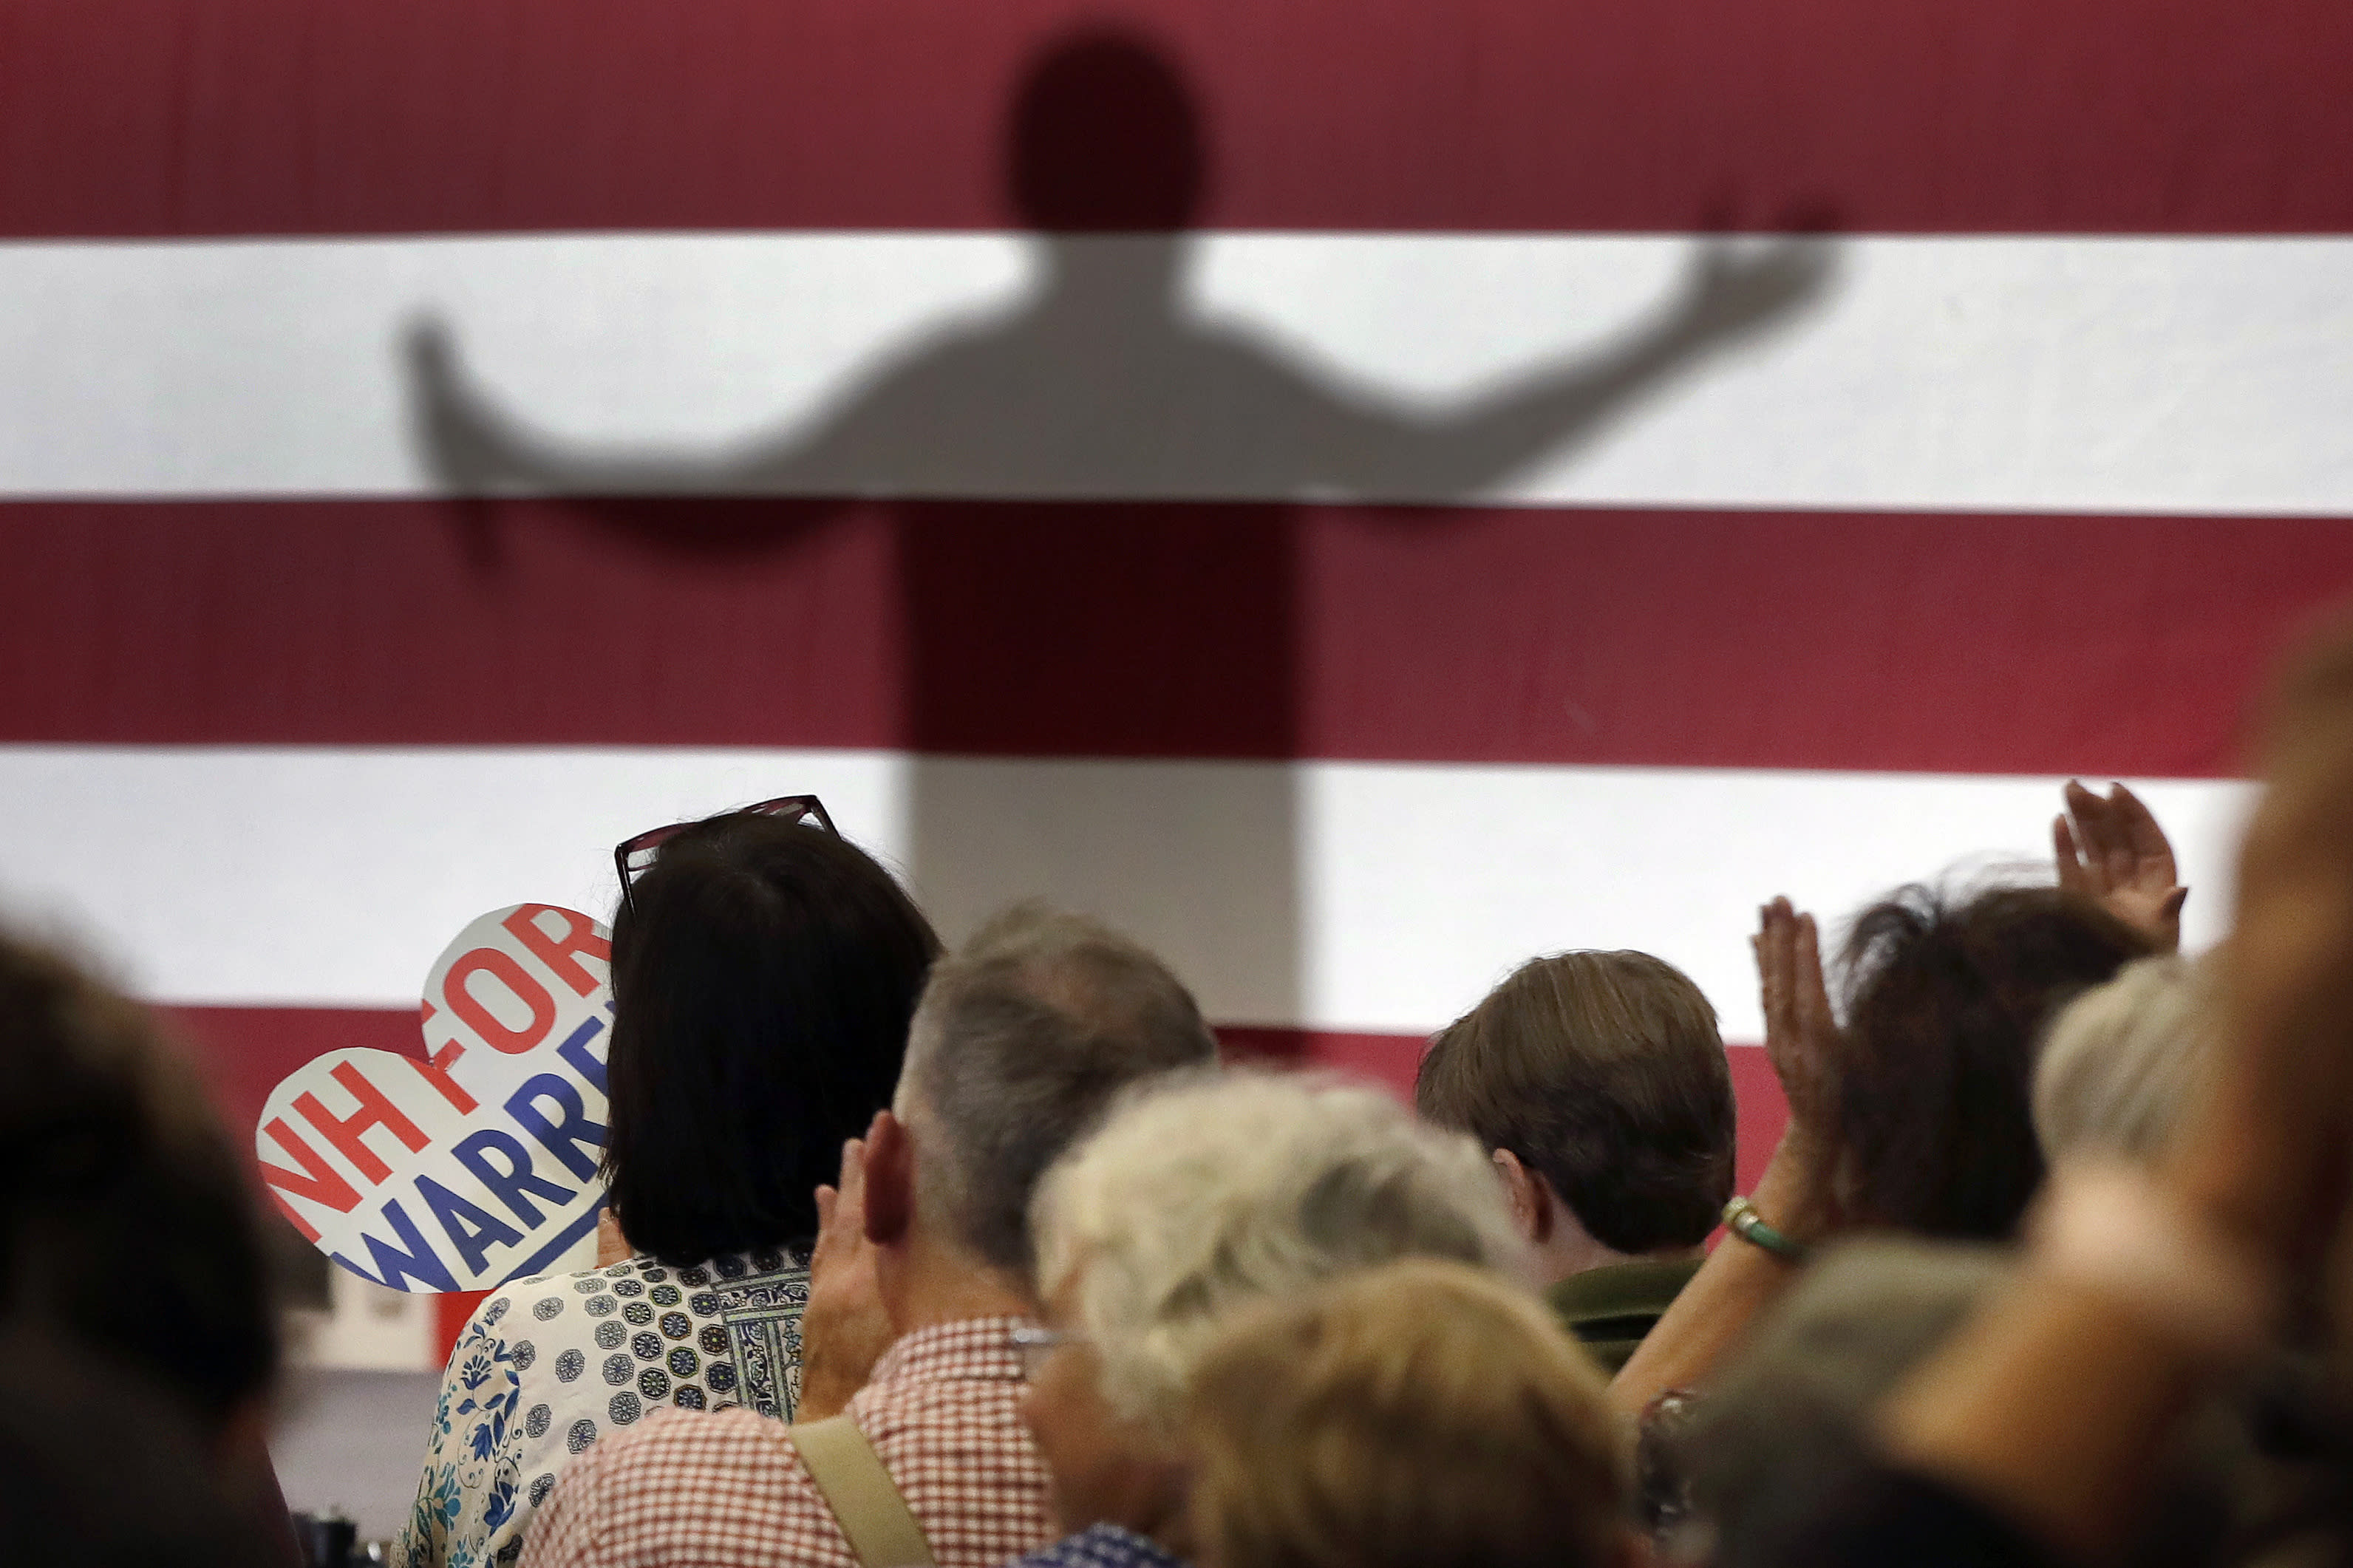 """FILE - In this Tuesday, Oct. 29, 2019 file photo, a shadow of Democratic presidential candidate Sen. Elizabeth Warren, D-Mass., is cast on a U.S. flag backdrop as supporters applaud during a campaign event in Laconia, N.H. On Friday, Jan. 17, 2020, The Associated Press reported on stories circulating online incorrectly asserting that the Warren presidential campaign staged or digitally altered a text message exchange of a Bernie Sanders campaign volunteer calling Warren """"Pocahontas."""" The Sanders campaign told the AP a rogue volunteer enrolled in their system, sending out the text message. The cell phone number listed on the text message has been disconnected. (AP Photo/Elise Amendola)"""